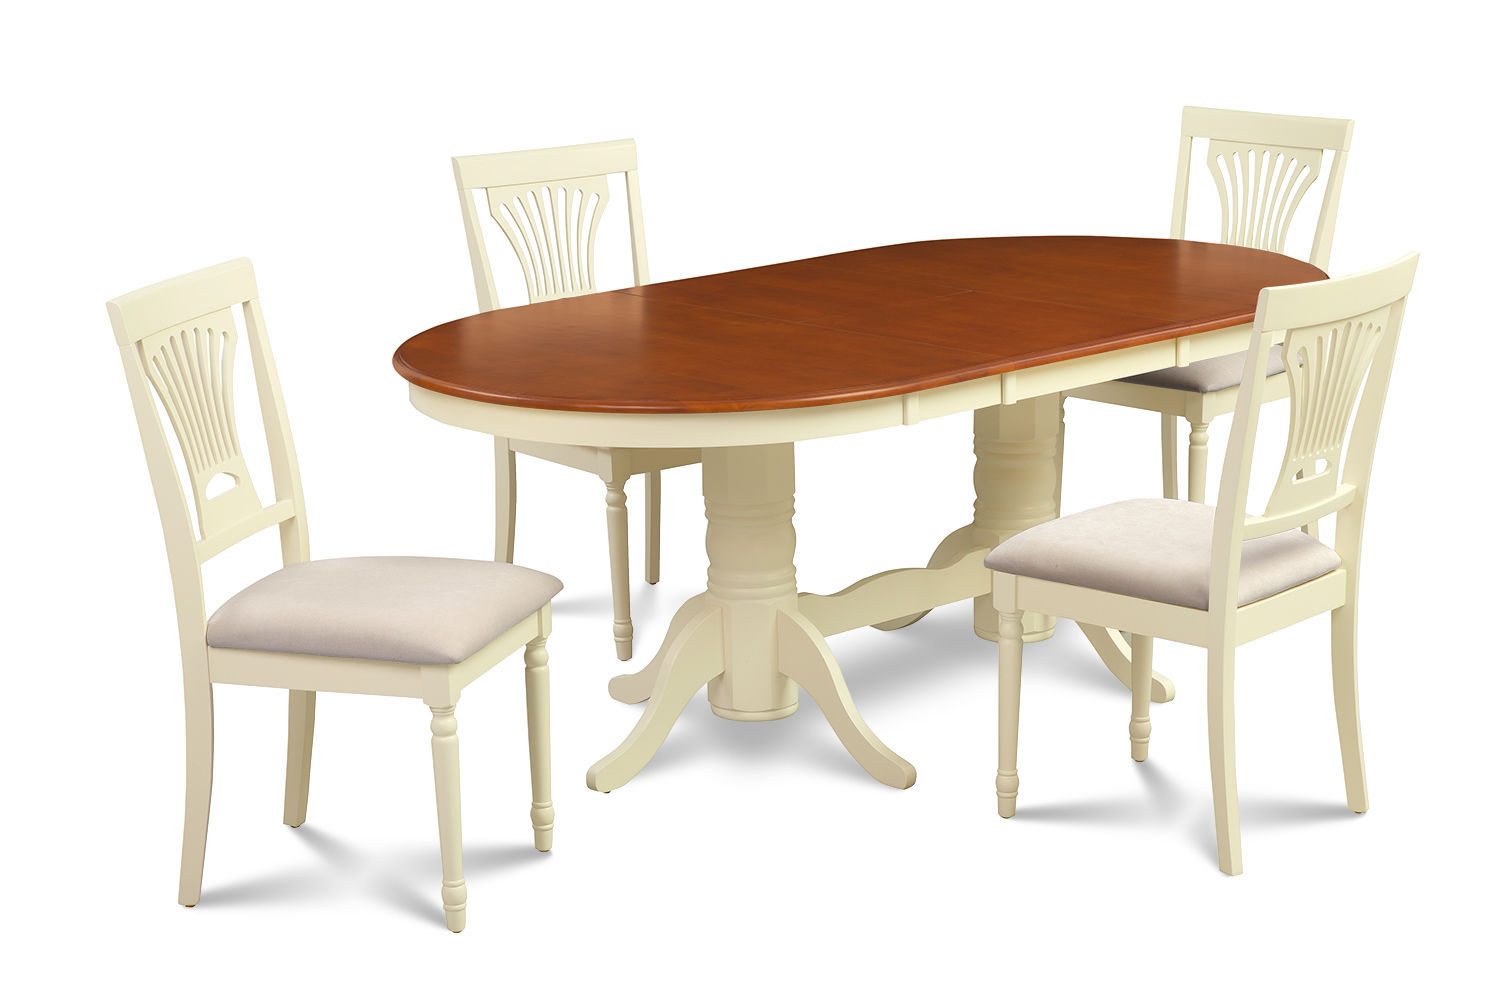 "DINETTE DINING ROOM TABLE SET 42""X78"" W. SOFT-PADDED SEAT IN BUTTERMILK & CHERRY"